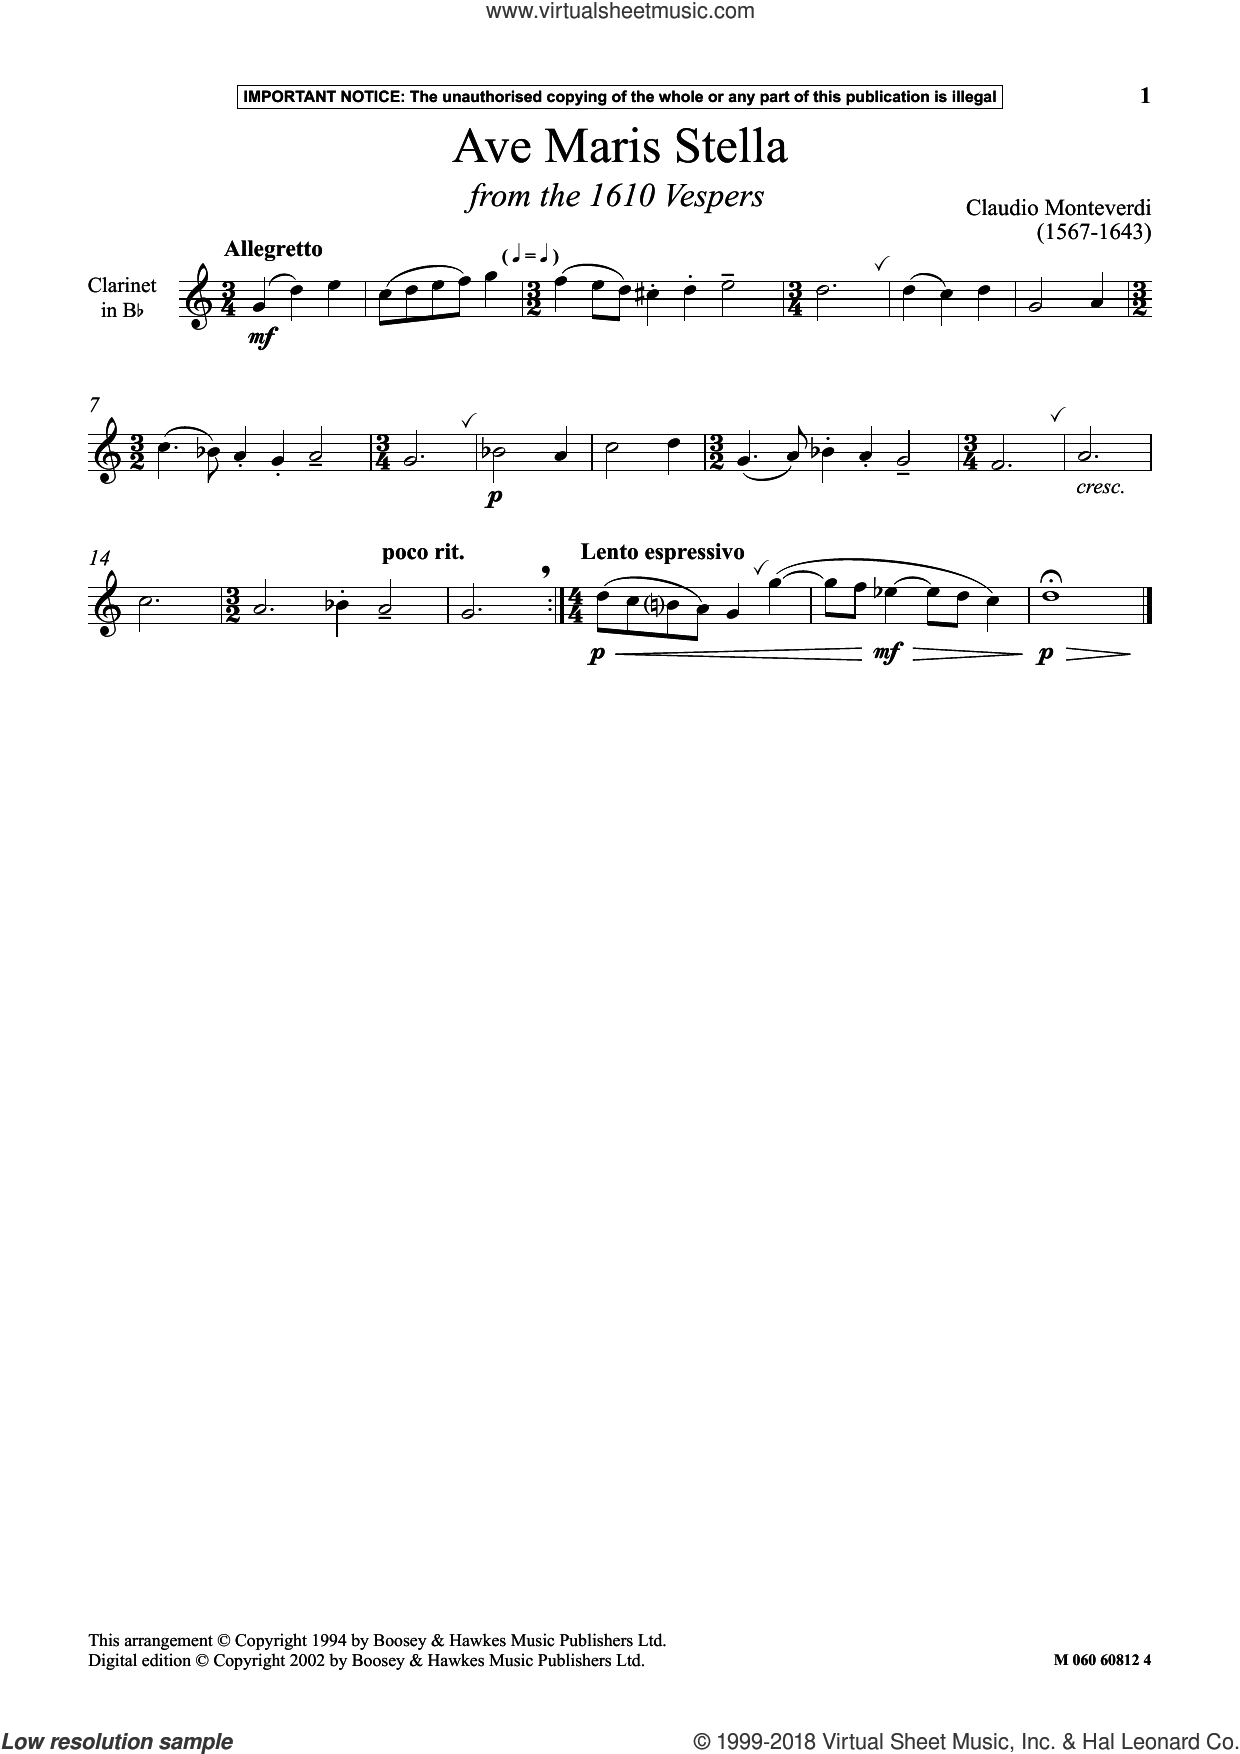 Ave Maris Stella (from The 1610 Vespers) sheet music for clarinet solo by Claudio Monteverdi, classical score, intermediate skill level